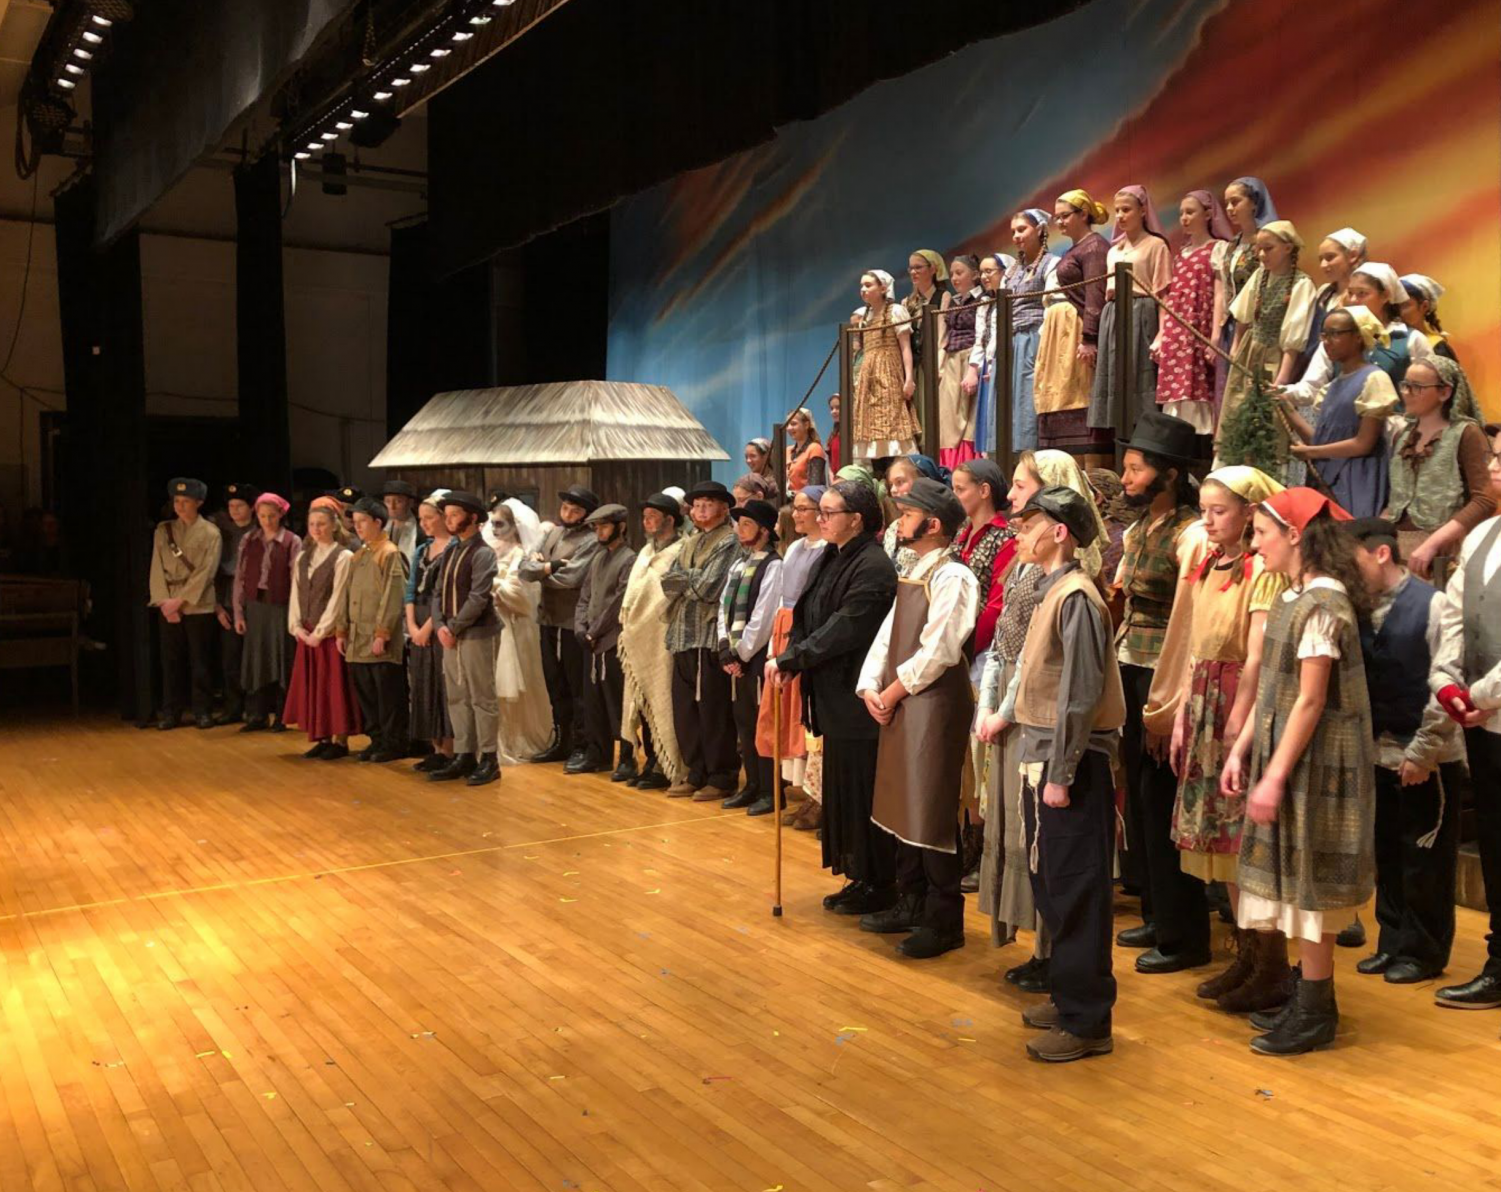 Lining the stage proudly, the cast and crew of DMS' production of Fiddler on the Roof take to the stage.